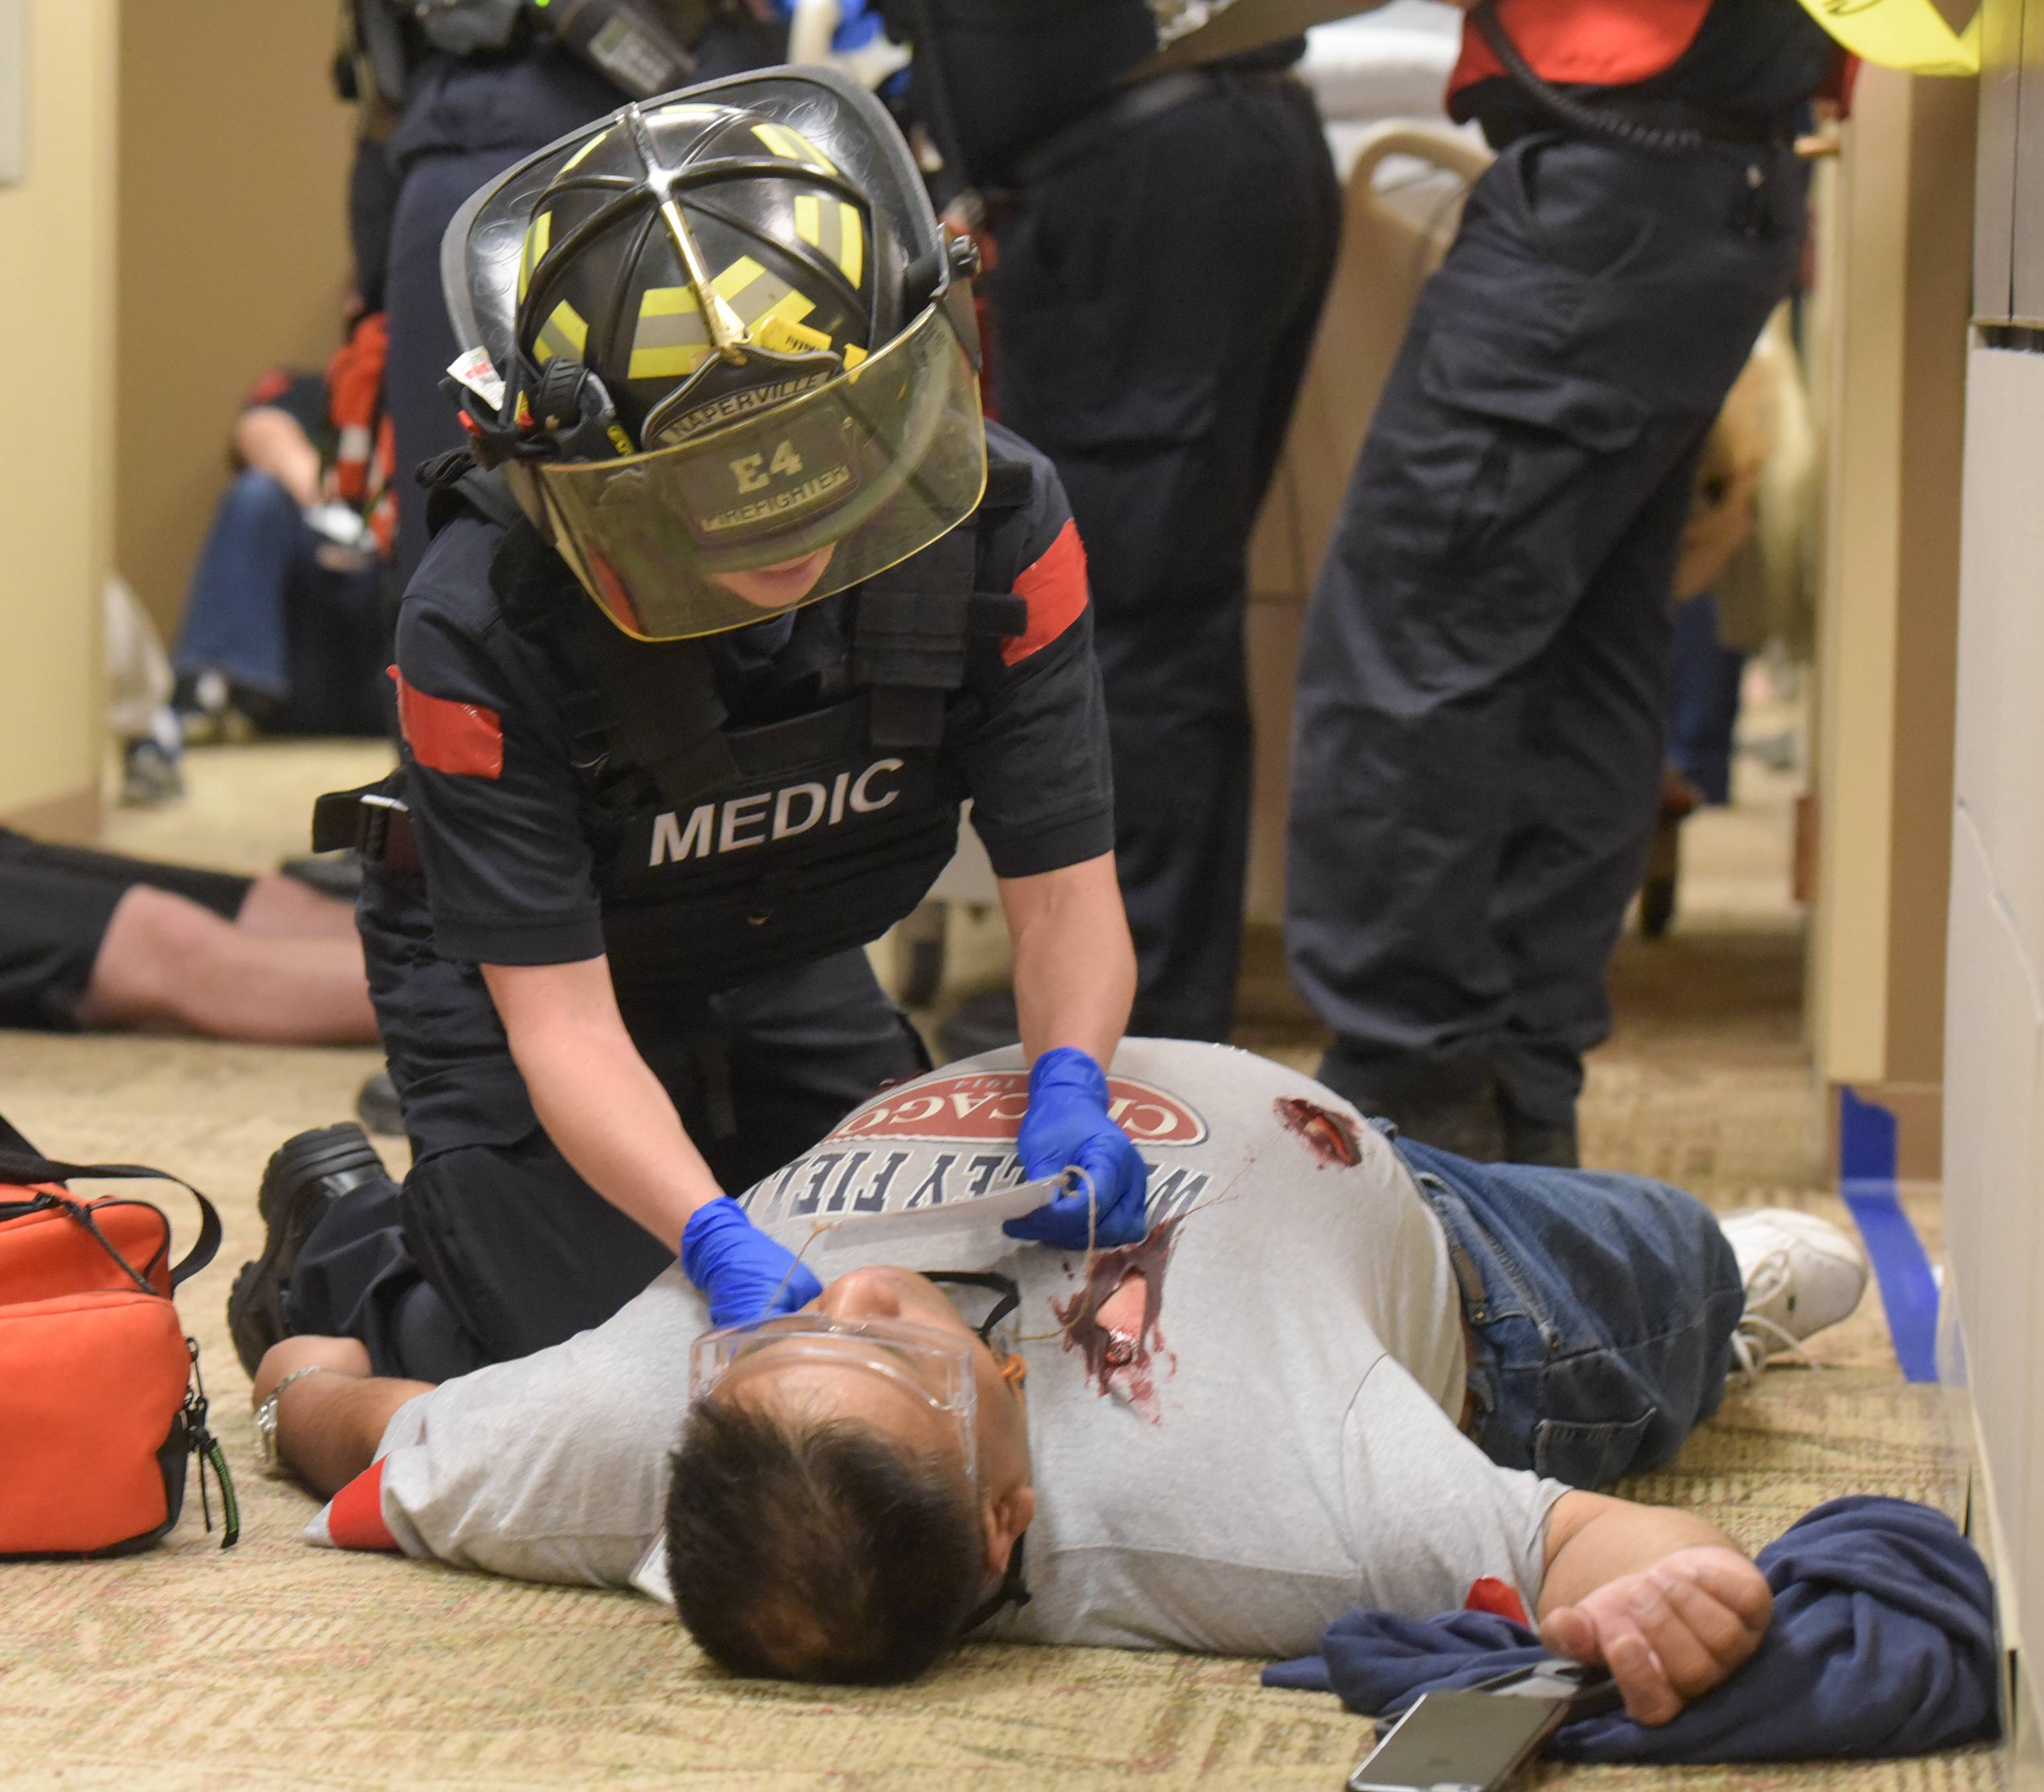 A Naperville paramedic in a ballistic vest and helmet checks on a victim during an active shooter drill Thursday morning at Edward Hospital.